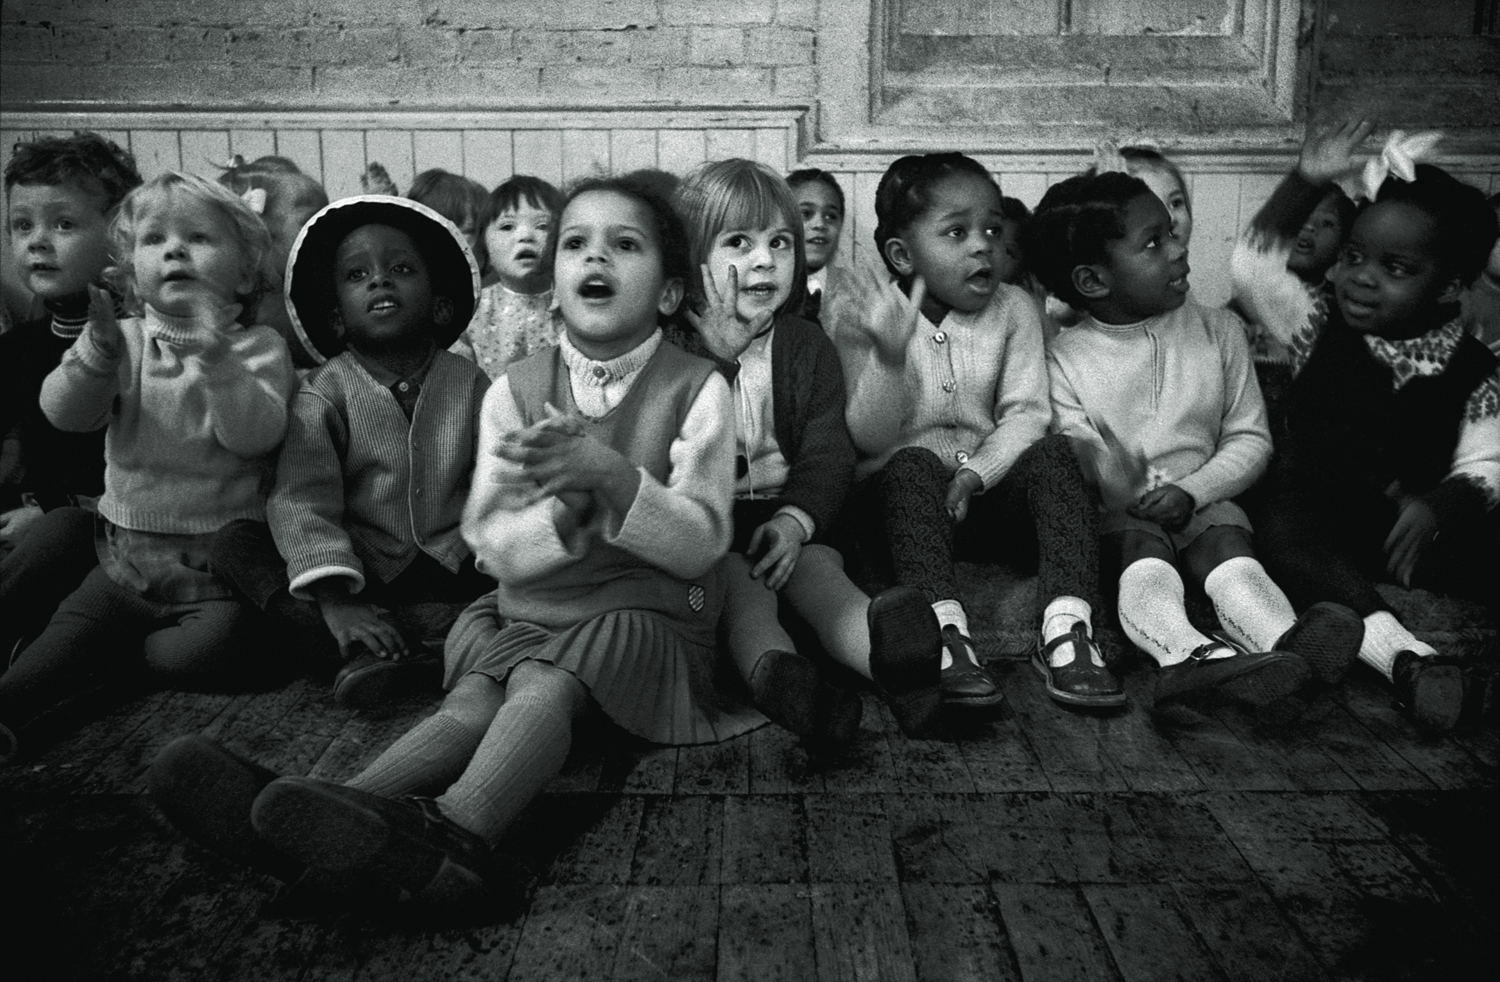 057 In a preschool children clapping and singing, Brixton, 1976, d141.jpg